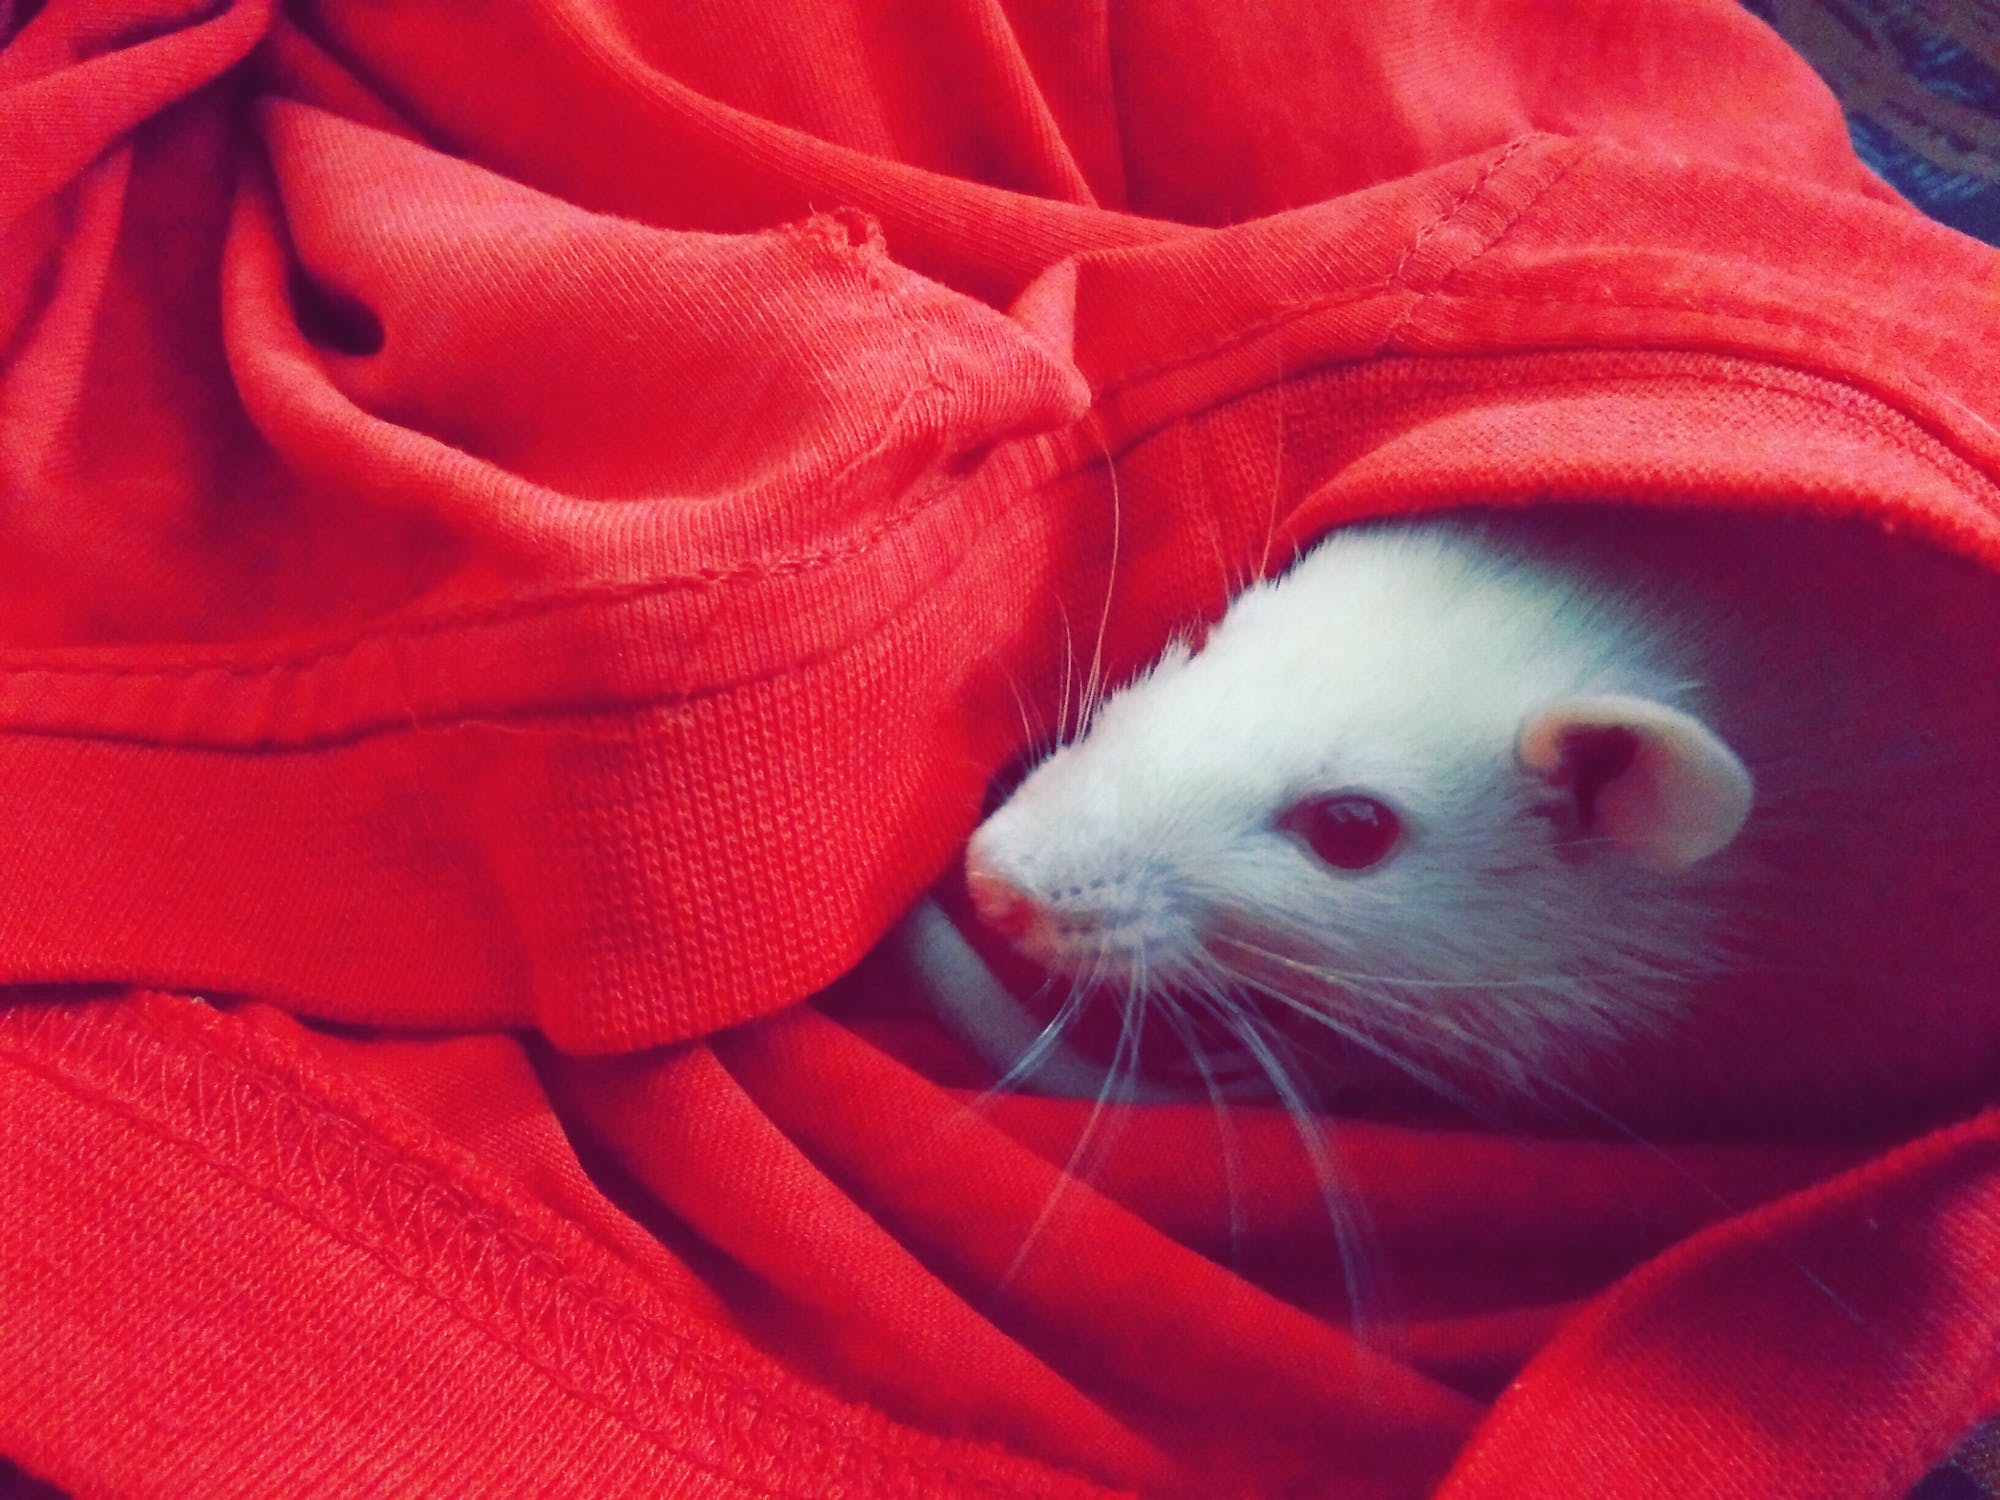 A rat in a red sweater | Source: Pexels